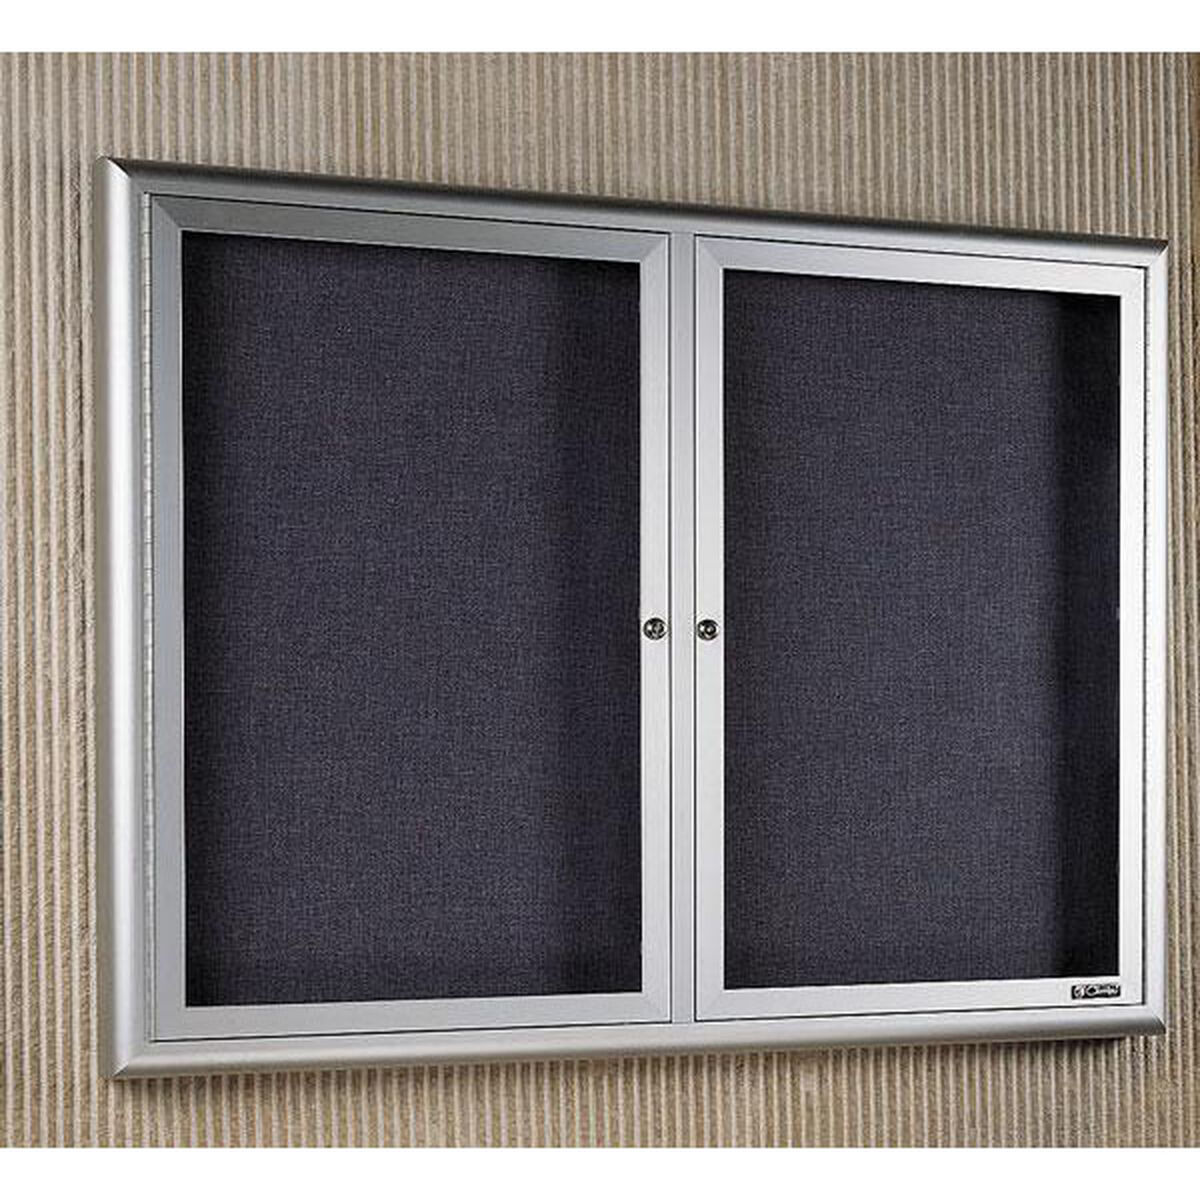 Classic Series Bulletin Board Cabinet With 2 Tempered Glass Locking Doors 48w X 36h